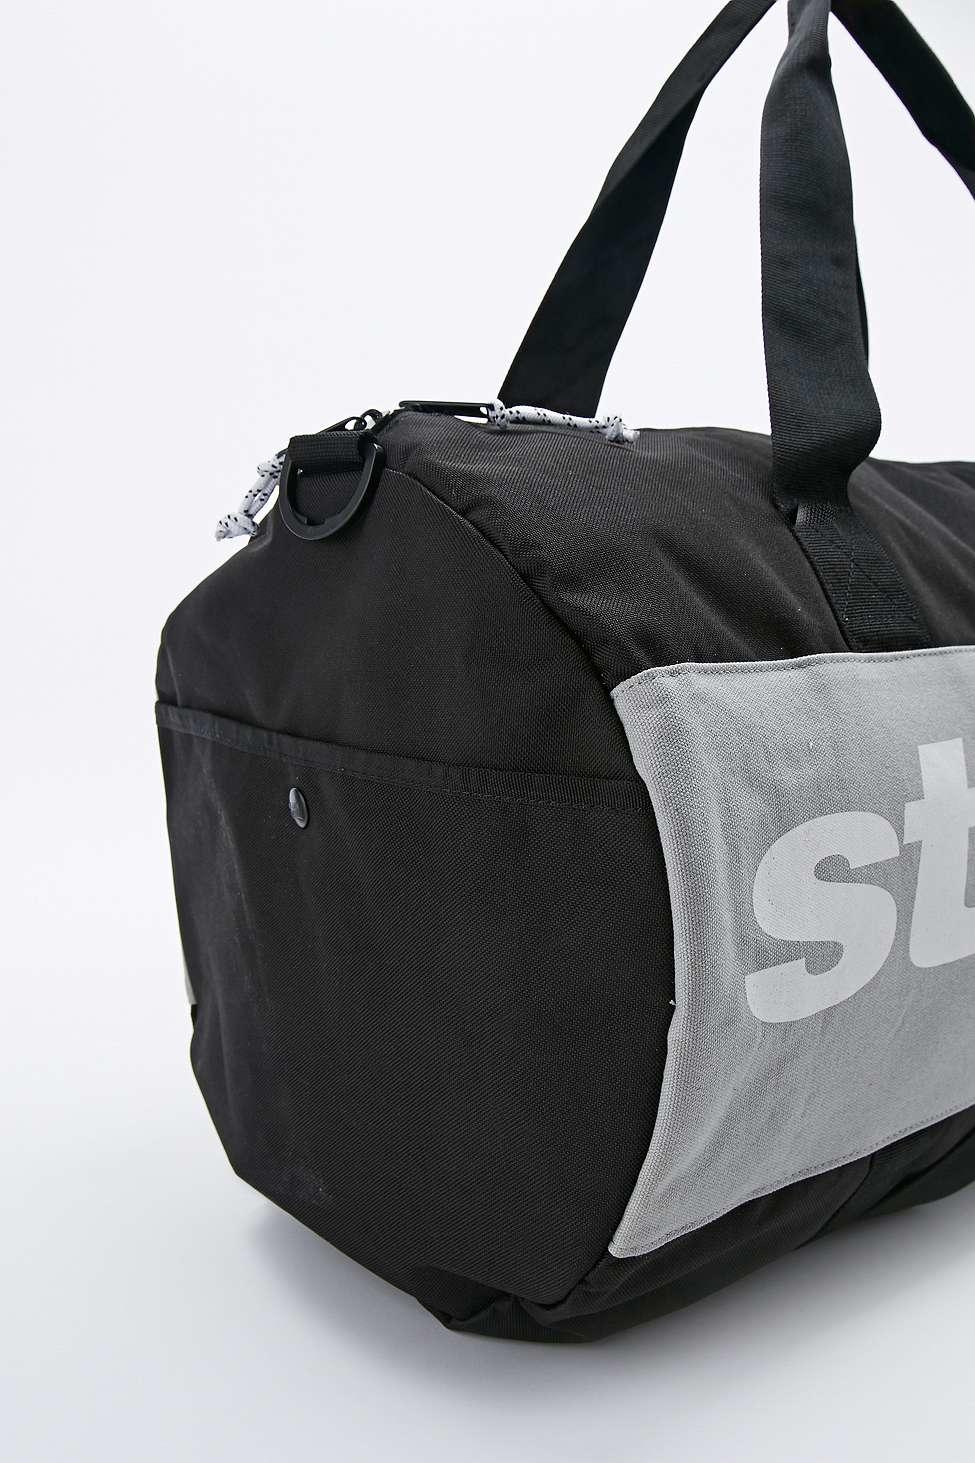 3bc34d587c9 Stussy X Herschel Supply Co. Sport Duffle Bag In Black And Grey in ...